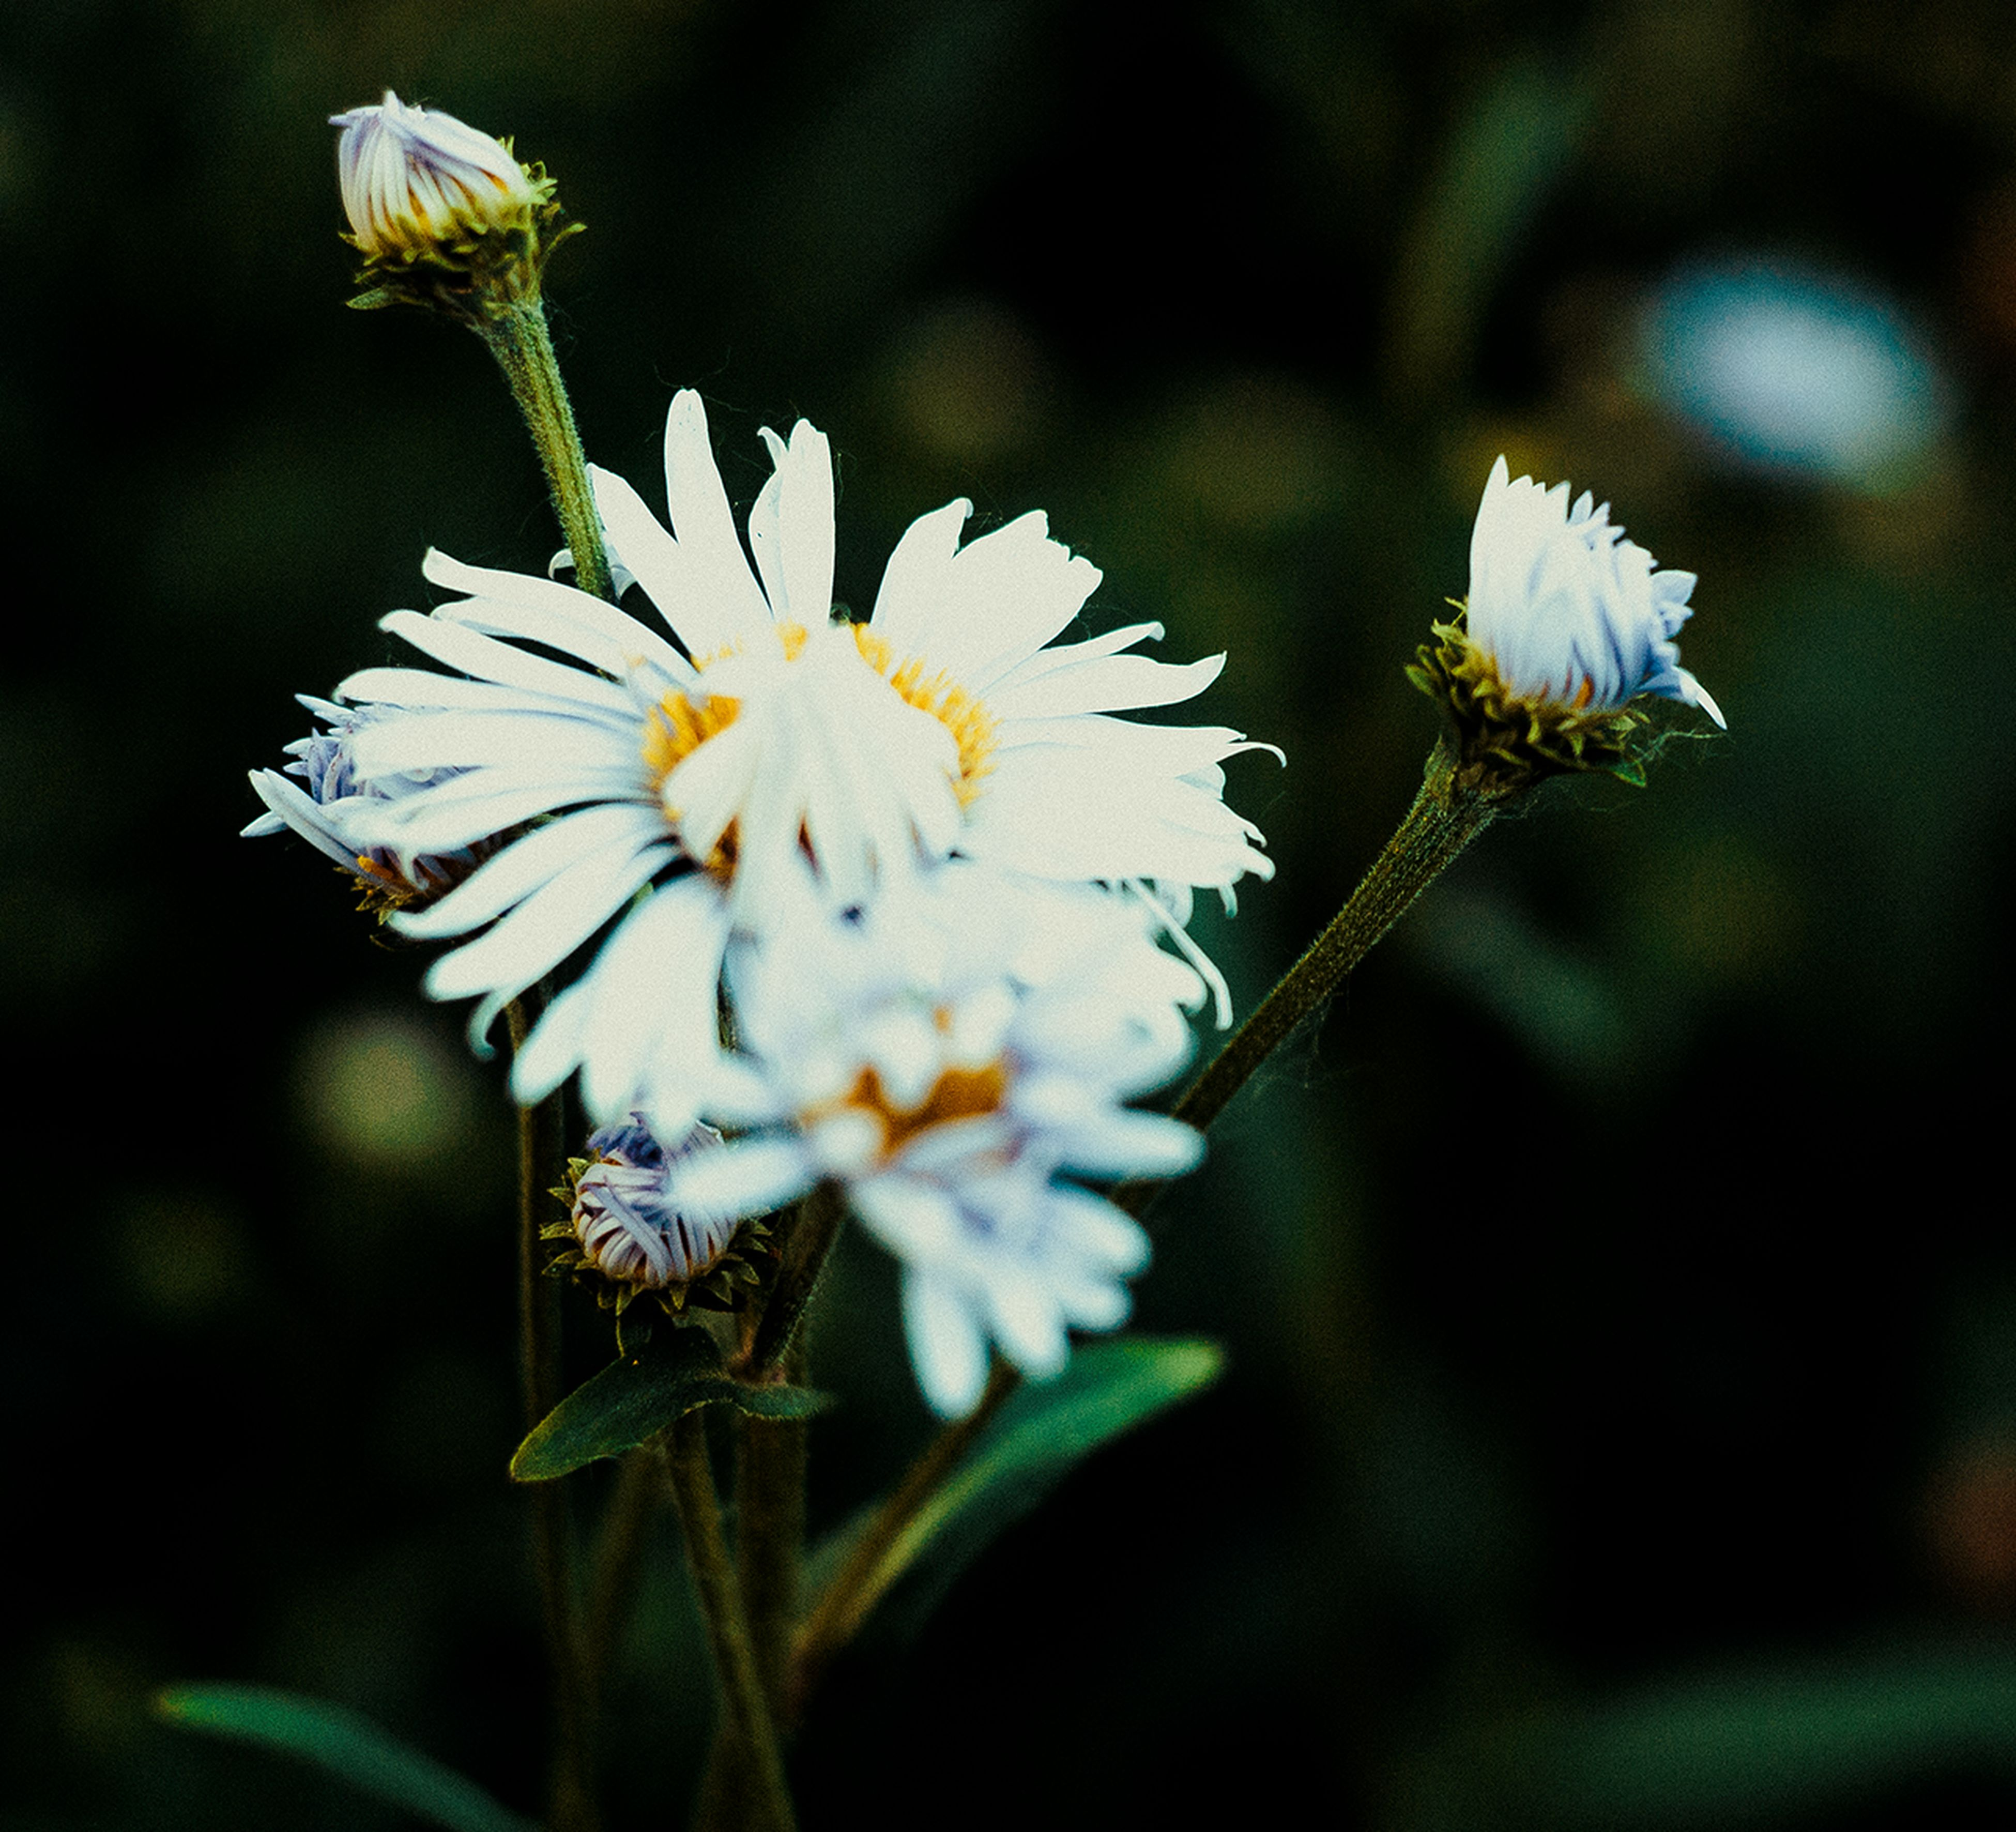 flower, freshness, white color, fragility, growth, flower head, petal, focus on foreground, beauty in nature, close-up, nature, blooming, white, plant, stem, selective focus, pollen, in bloom, blossom, outdoors